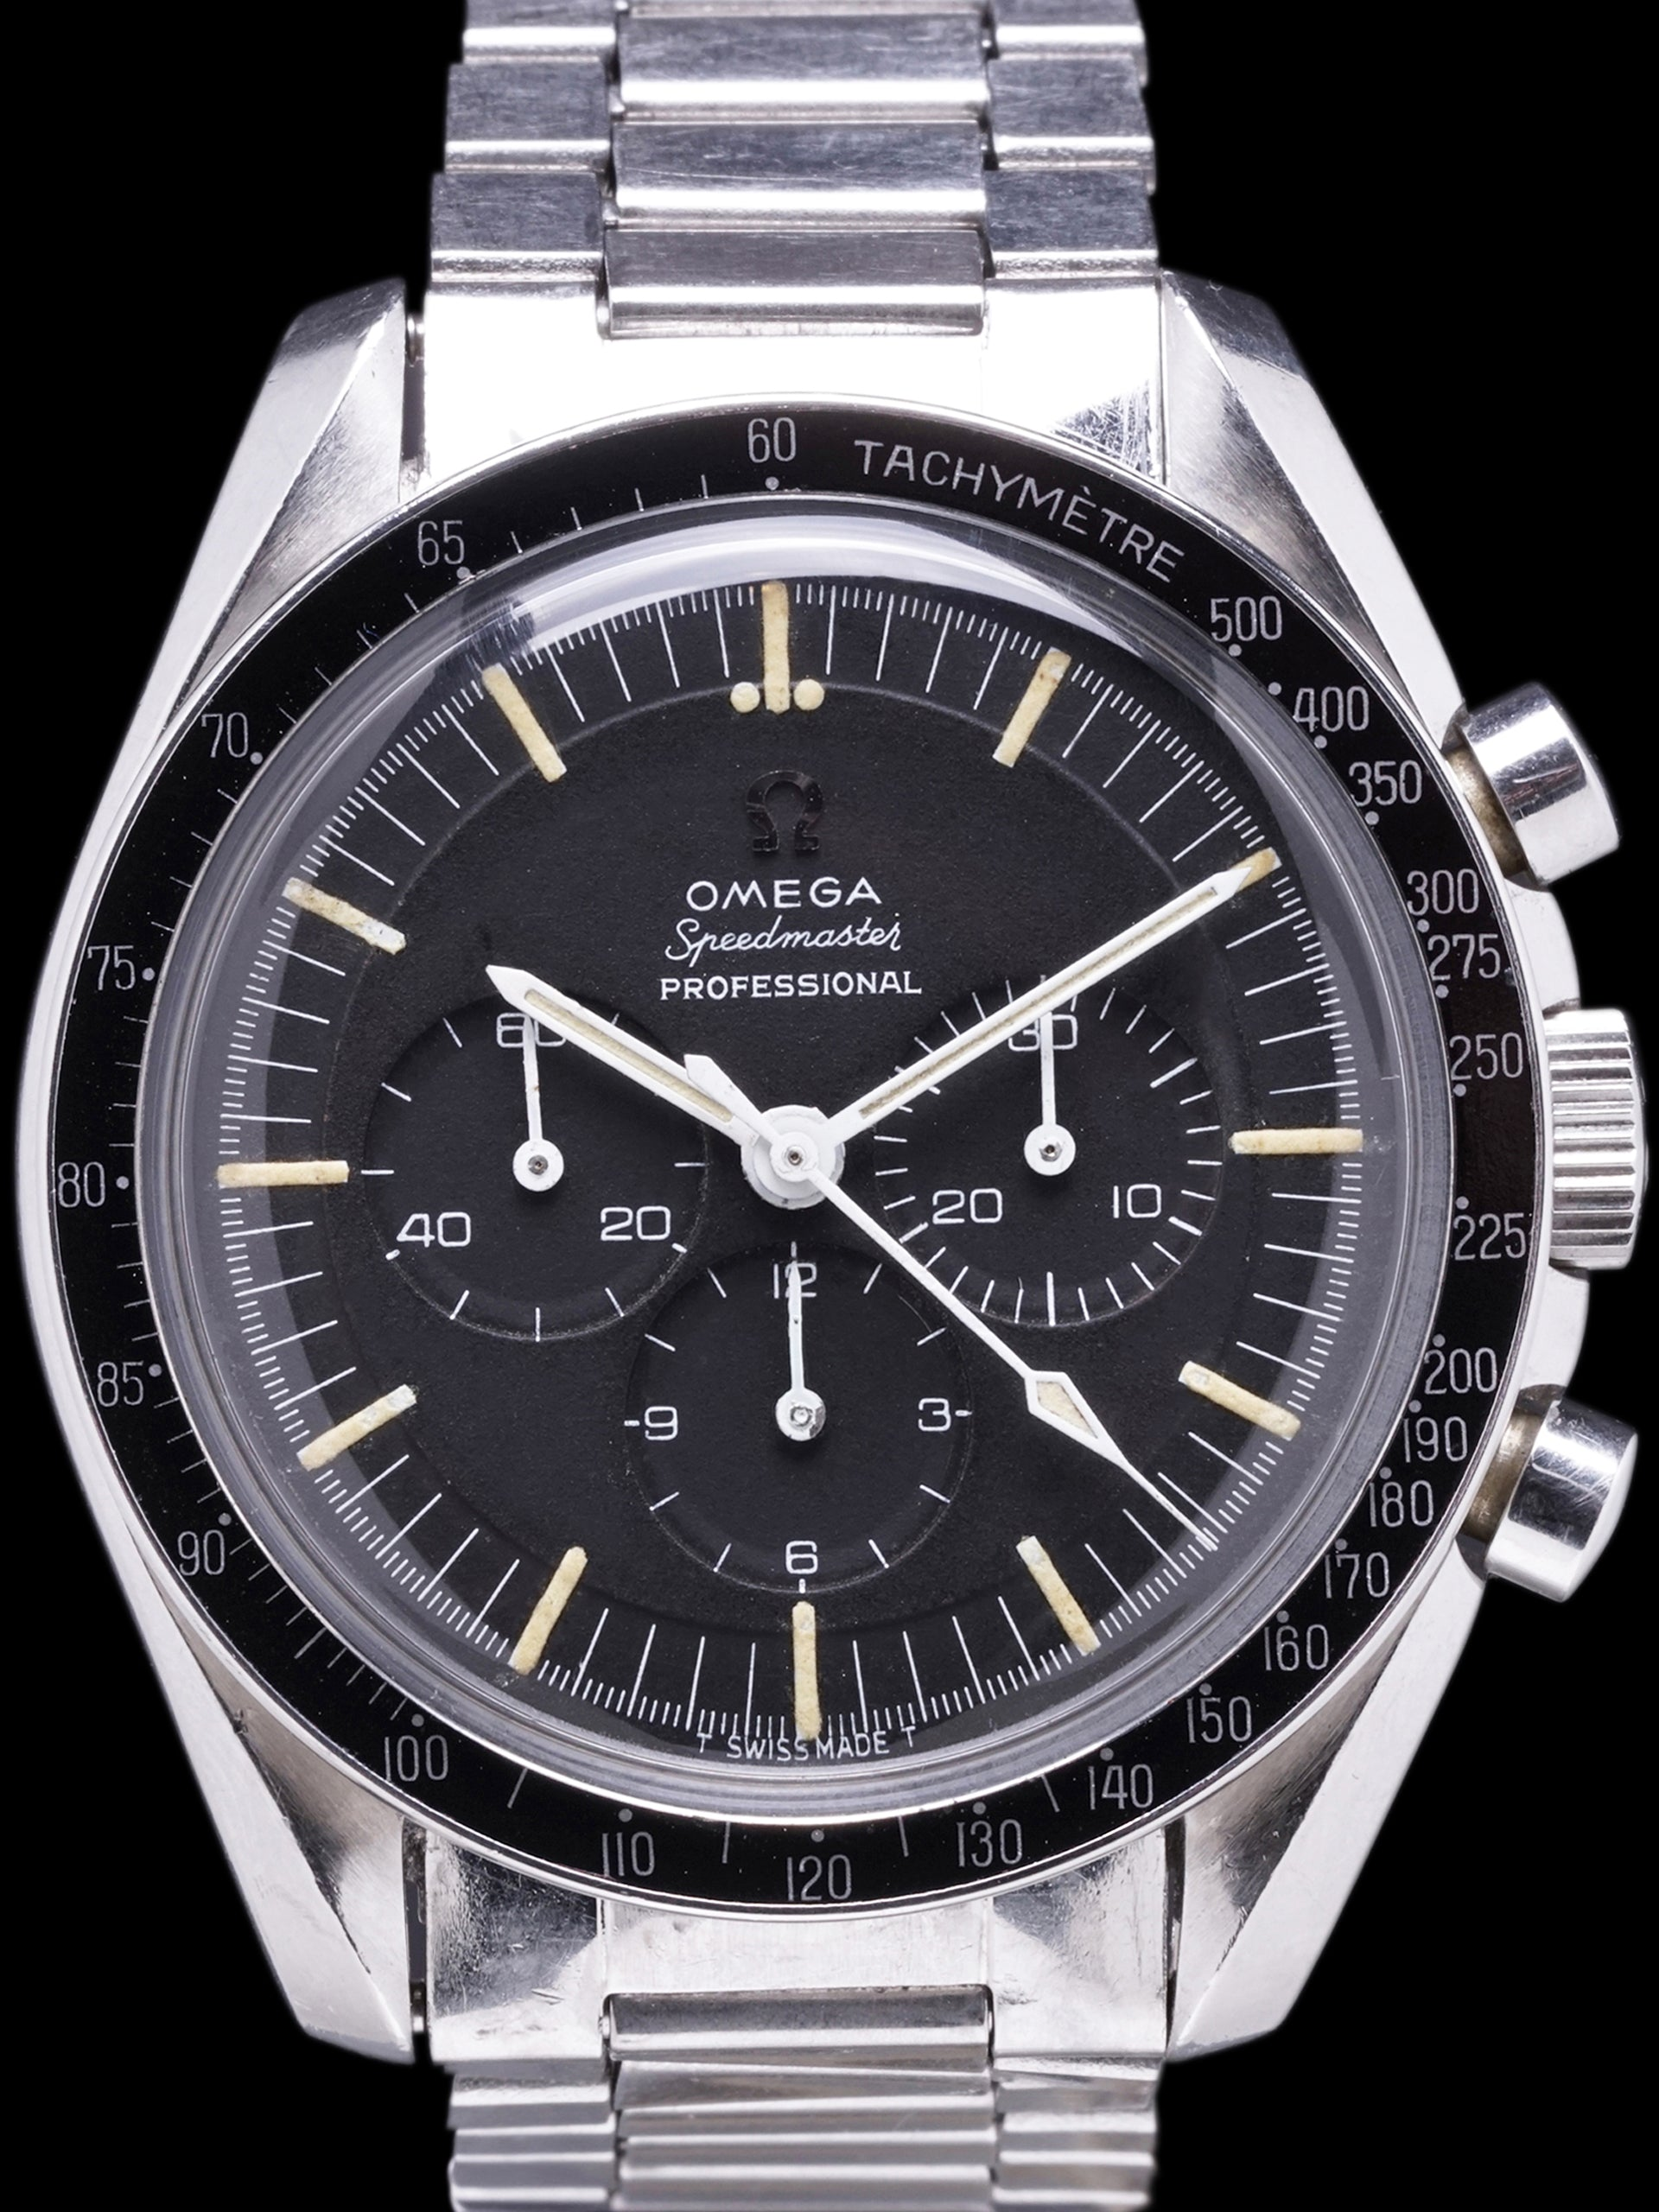 "1965 OMEGA Speedmaster Professional (Ref. 105.012) CAL. 321 ""Pre-Moon"" W/ Smooth Sub-Dials"